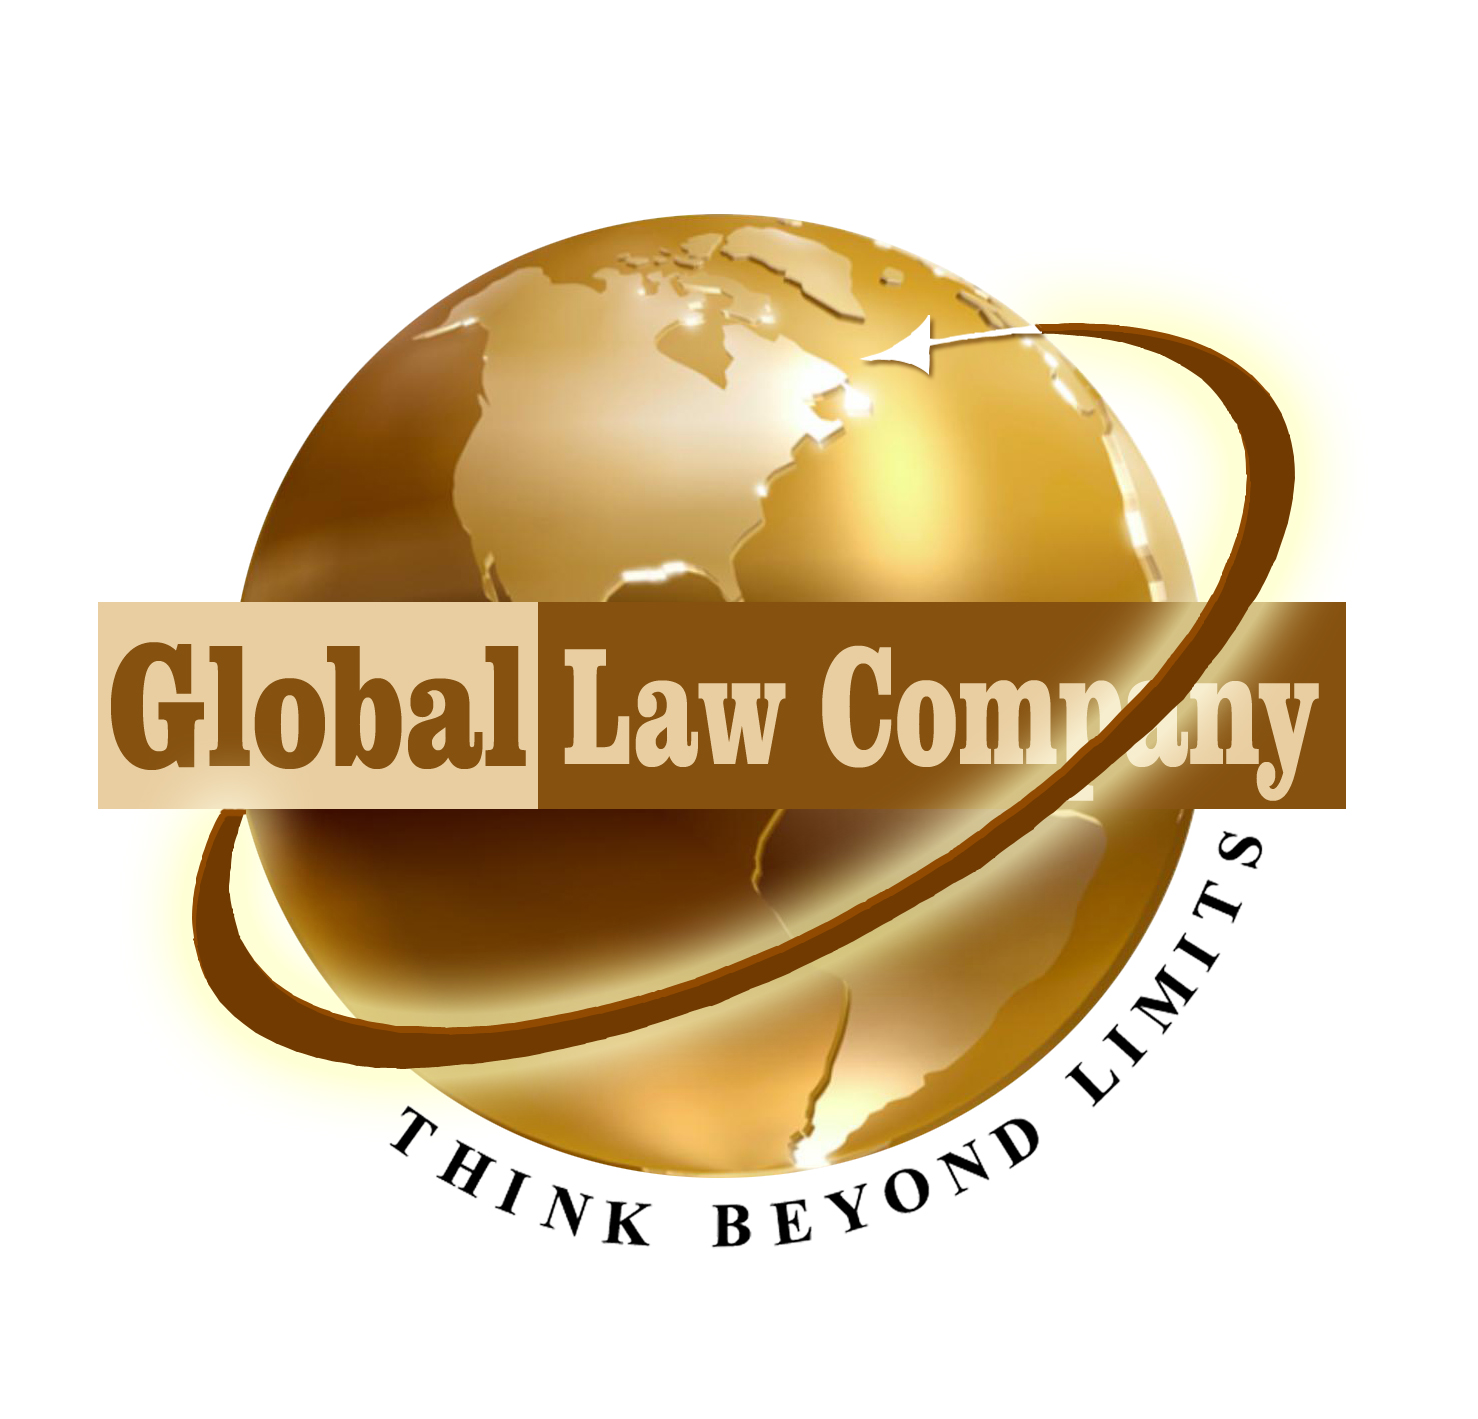 http://www.pakpositions.com/company/global-law-company